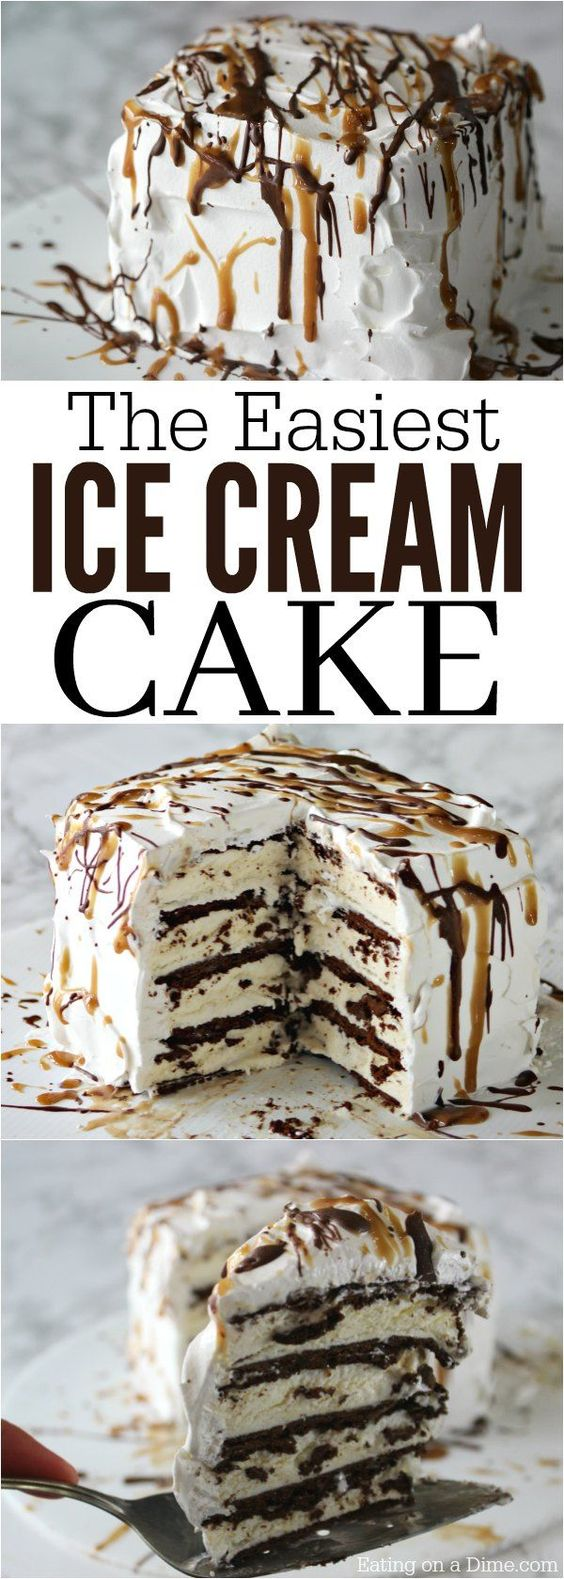 Easy Ice cream Cake Recipe